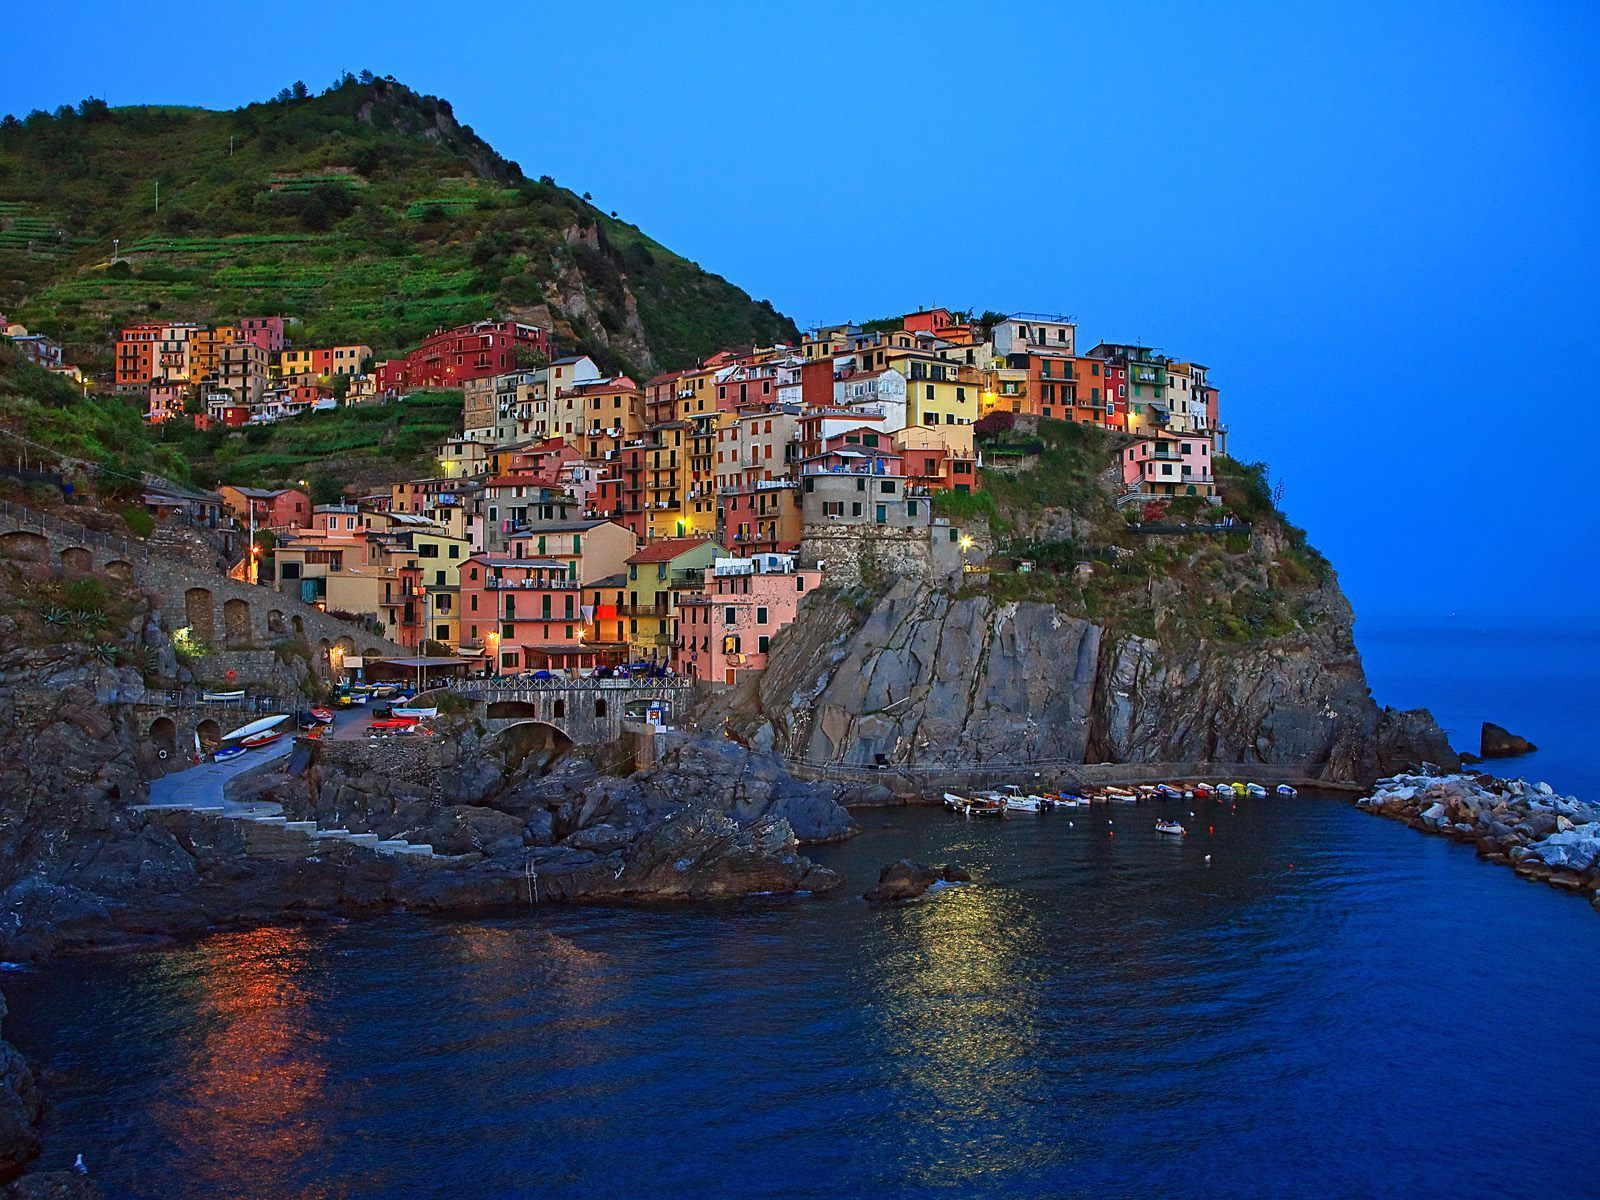 Cinque Terre is a marvelous union of five Italian Riviera villages sloping  down in steep banks